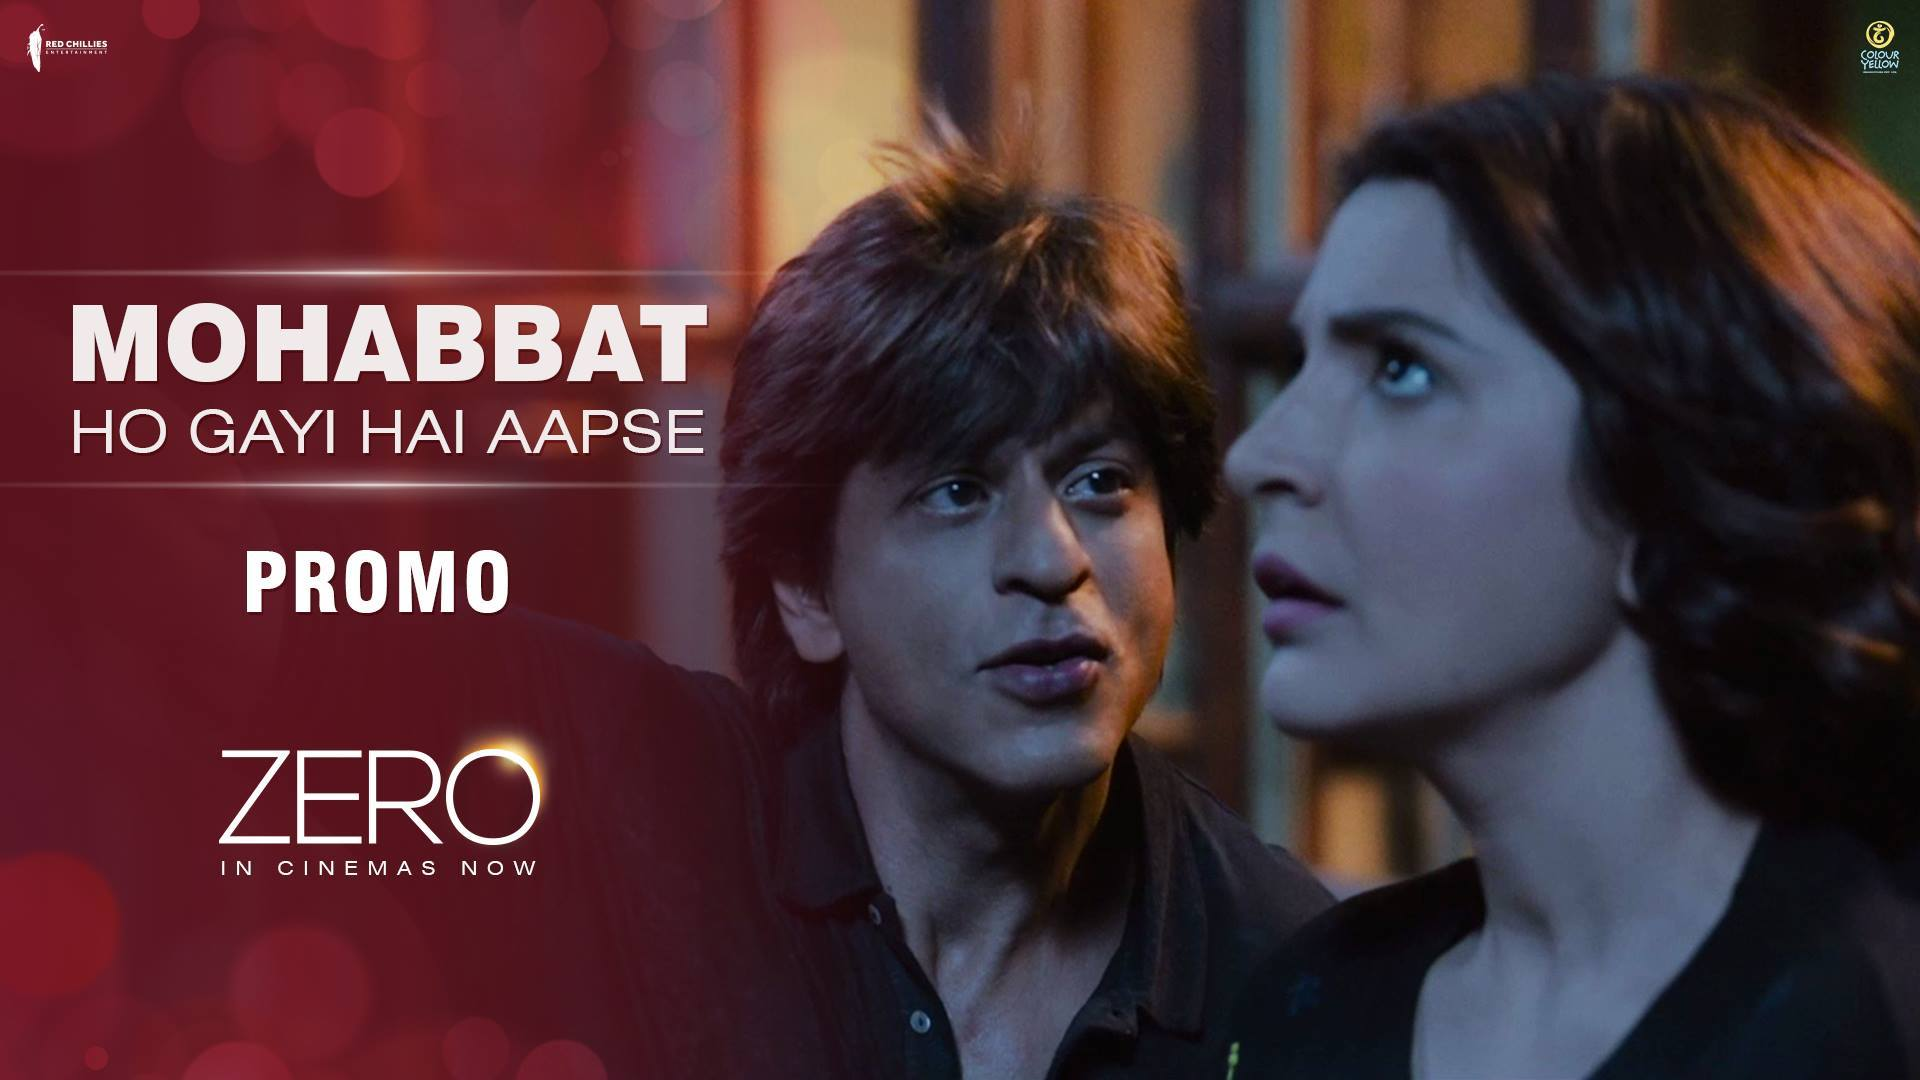 Pyaar mein taare tod leta hai, zara chaand ko sambhaal ke rakhna! Feel the magic of love this Christmas! #ChristmasWithZero  Anushka Sharma Katrina Kaif Aanand L Rai Colour Yellow Productions